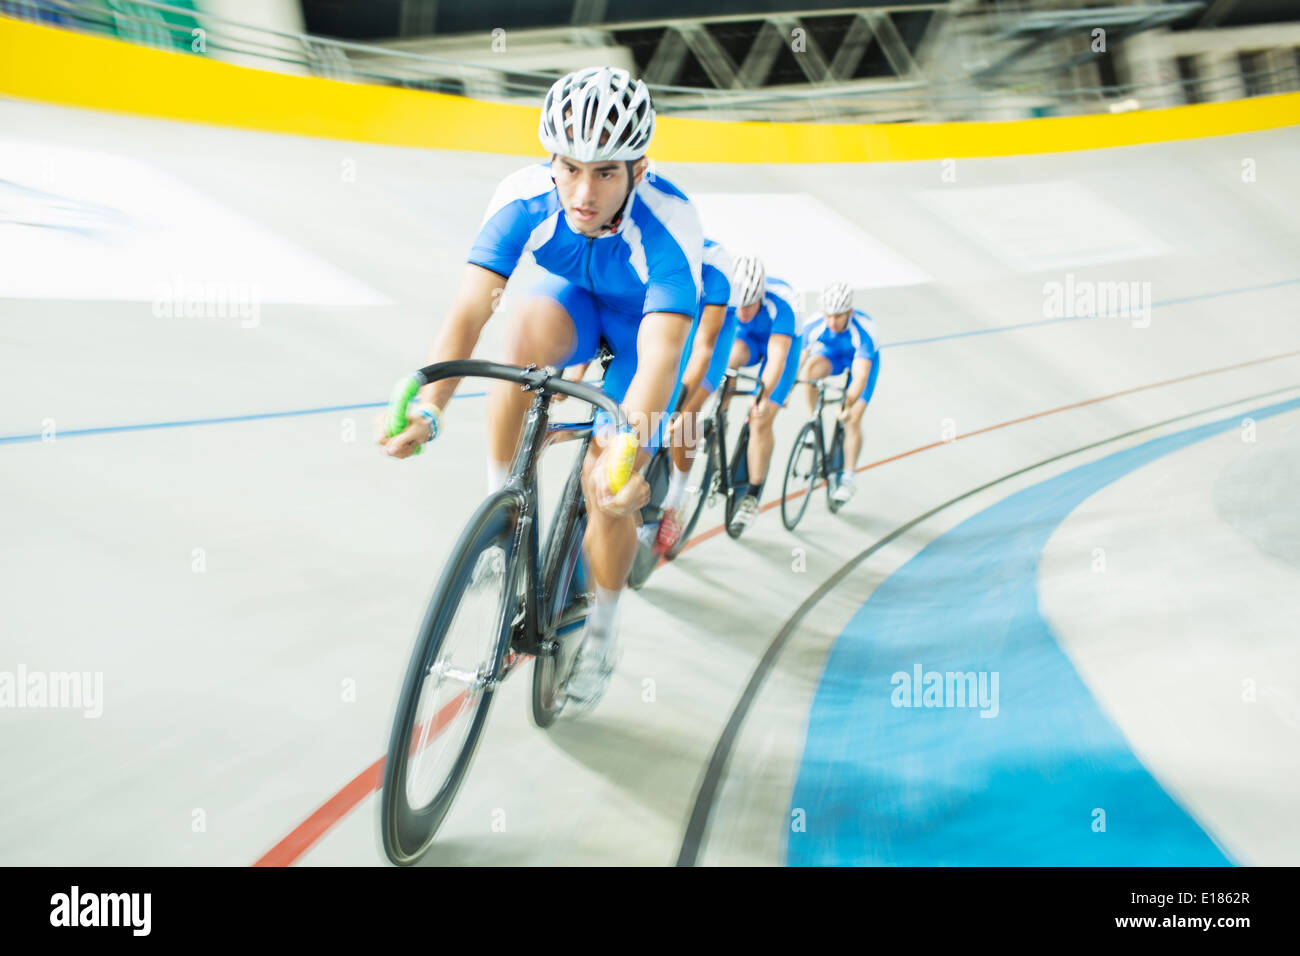 Track cyclist racing in velodrome - Stock Image